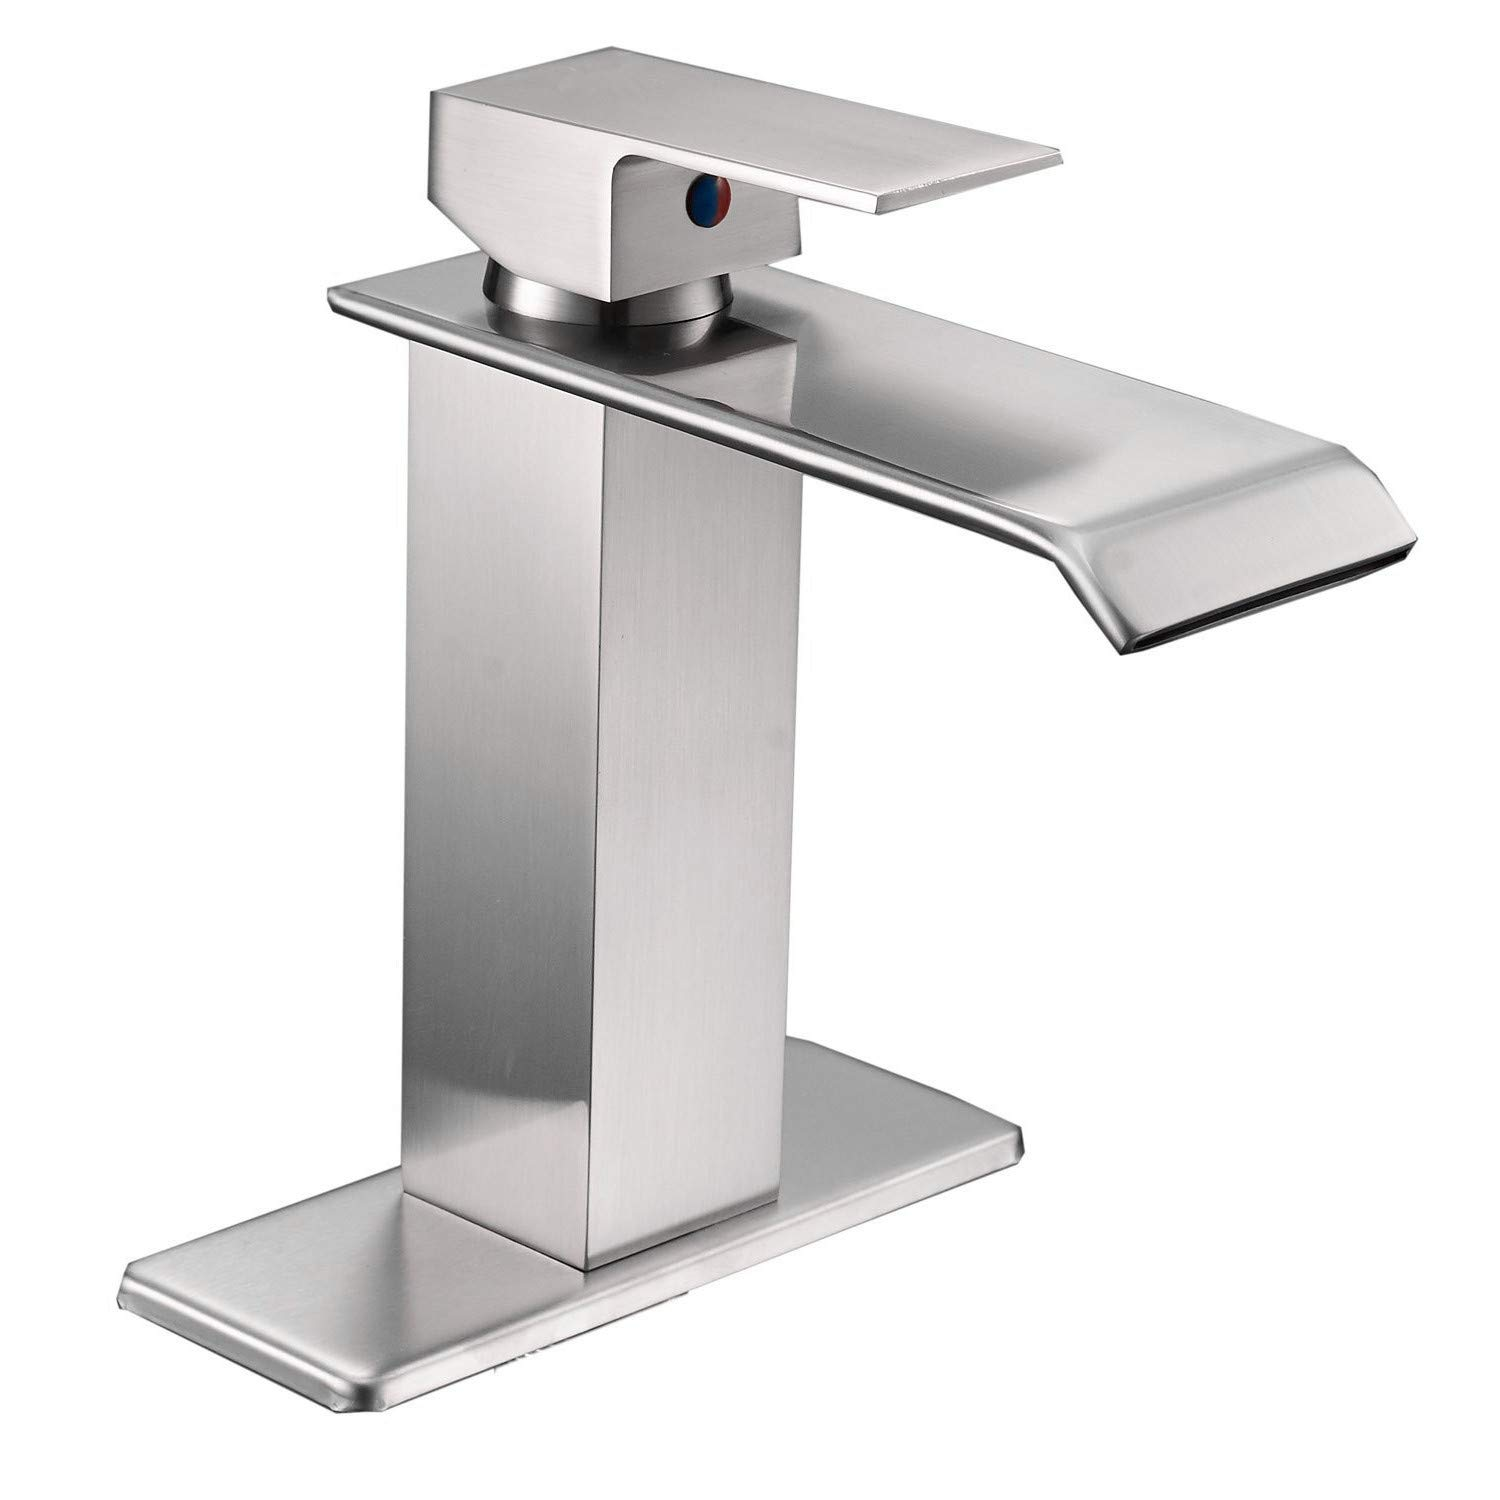 Bathfinesse Bathroom Sink Faucet Waterfall Spout Single Handle One Hole Commercial Lavatory Deck Mount Brushed Nickel